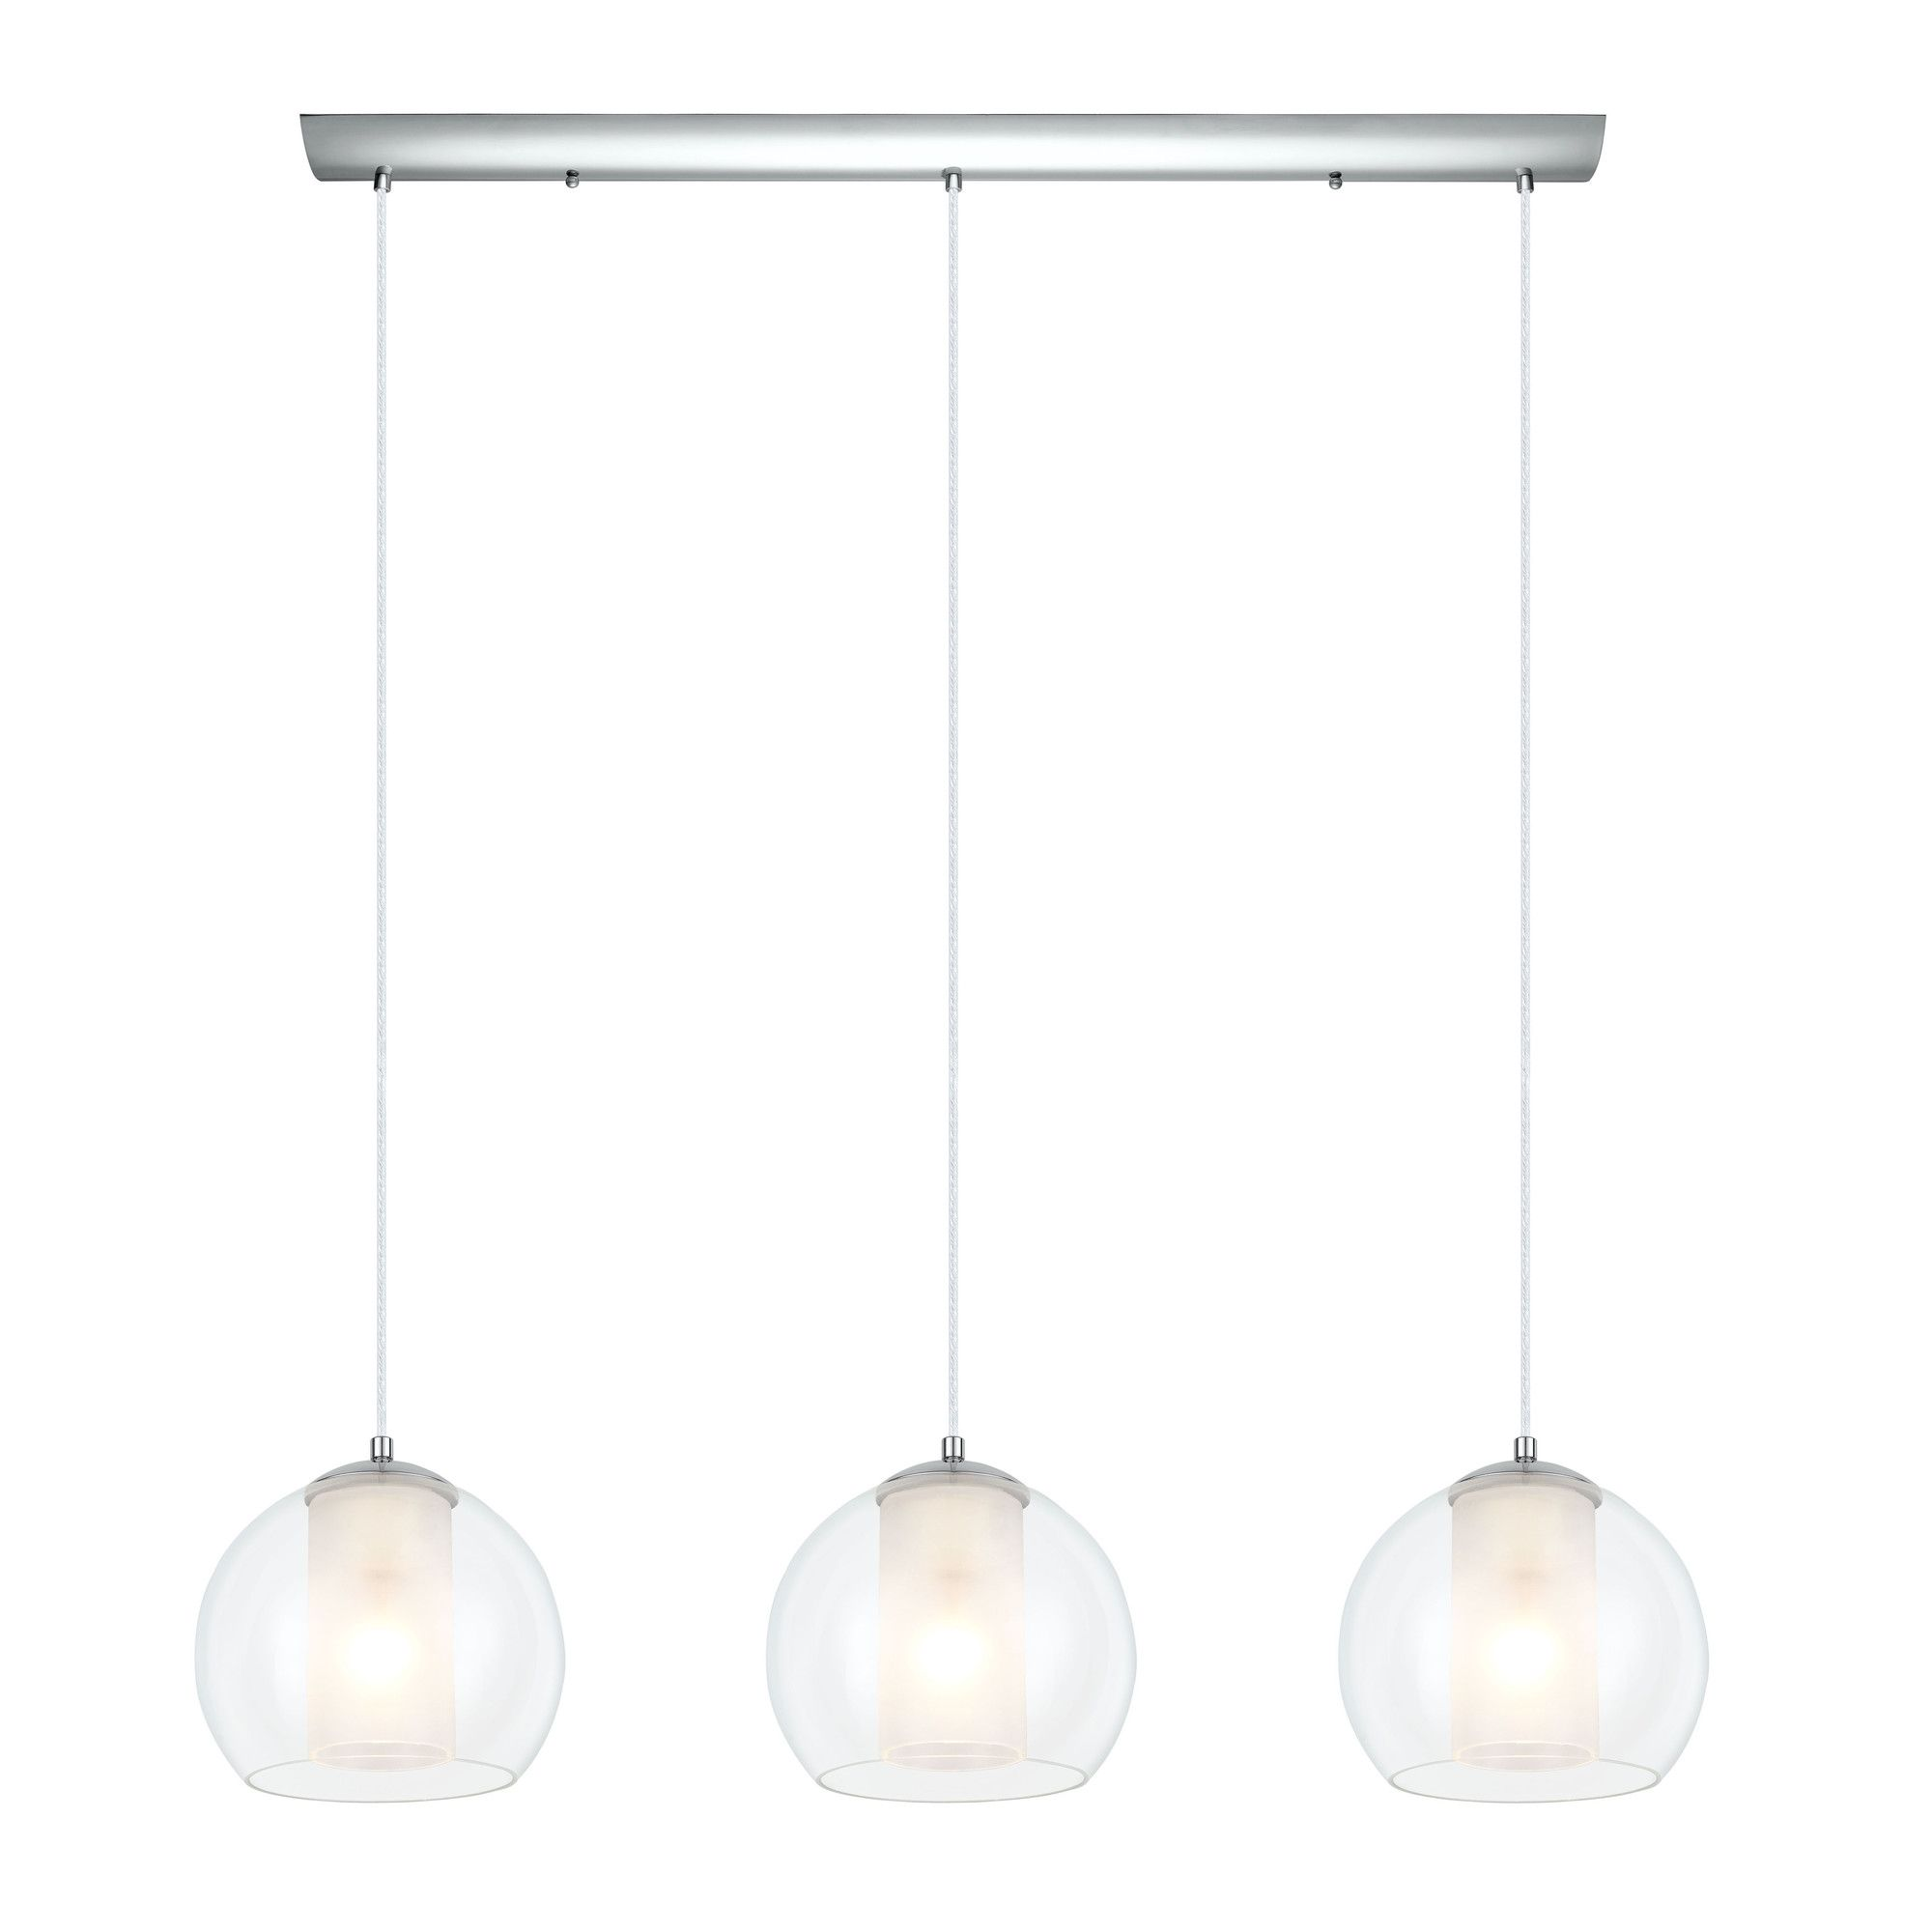 EGLO Bolsano Light Kitchen Island Pendant AllModern Lighting - Three light pendant kitchen